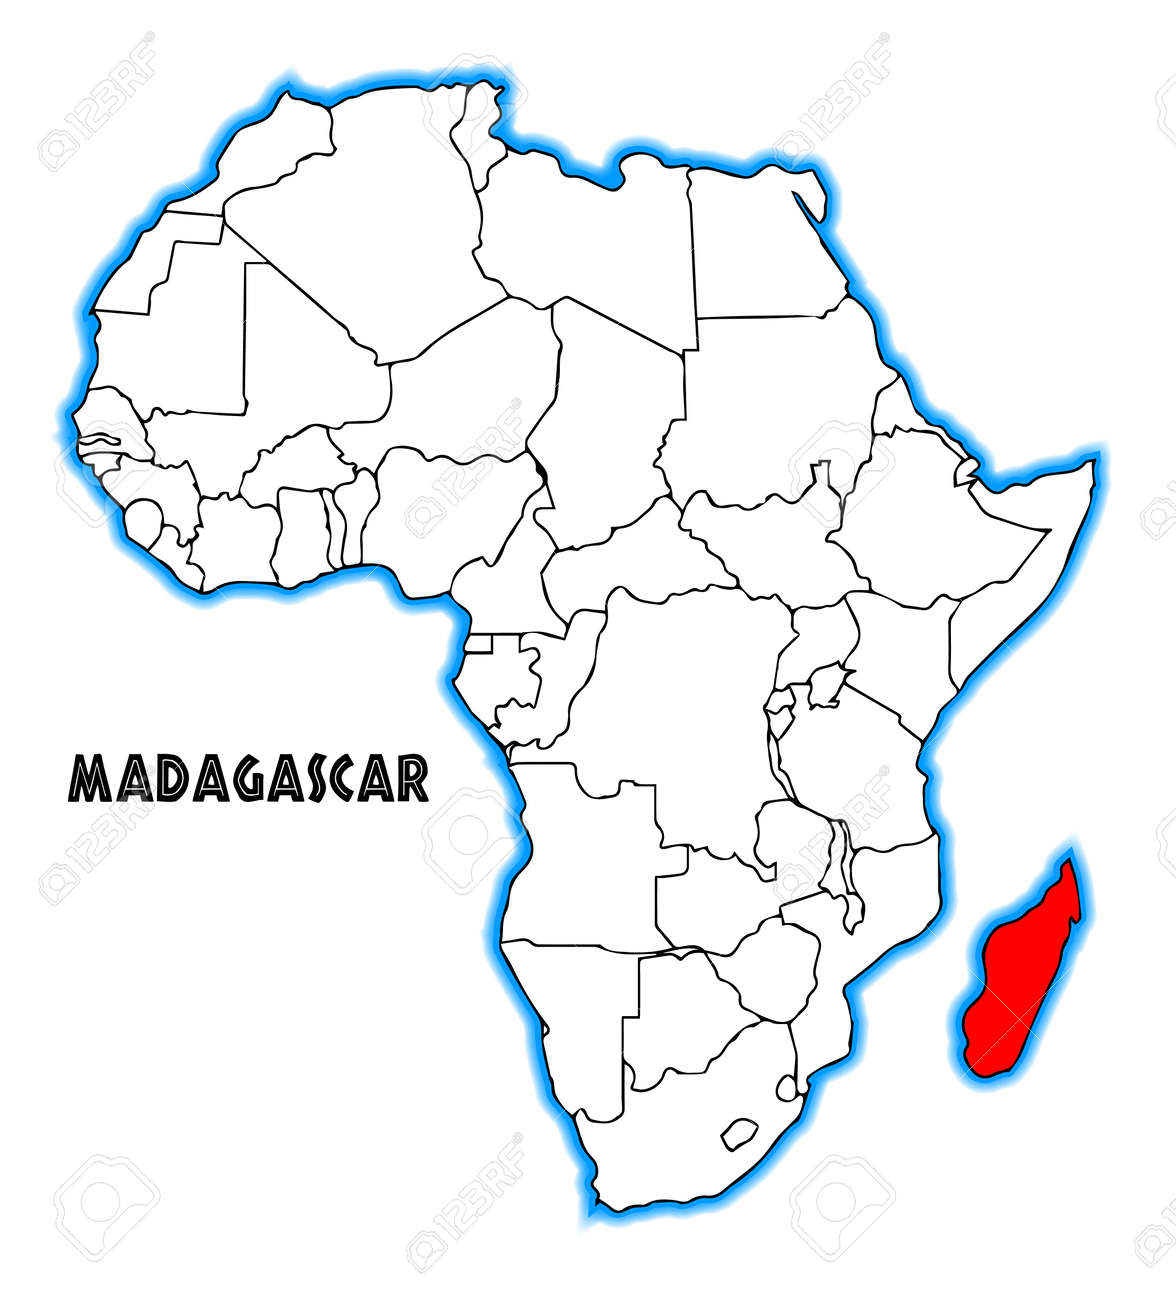 Map Of Africa Madagascar.Madagascar Outline Inset Into A Map Of Africa Over A White Background